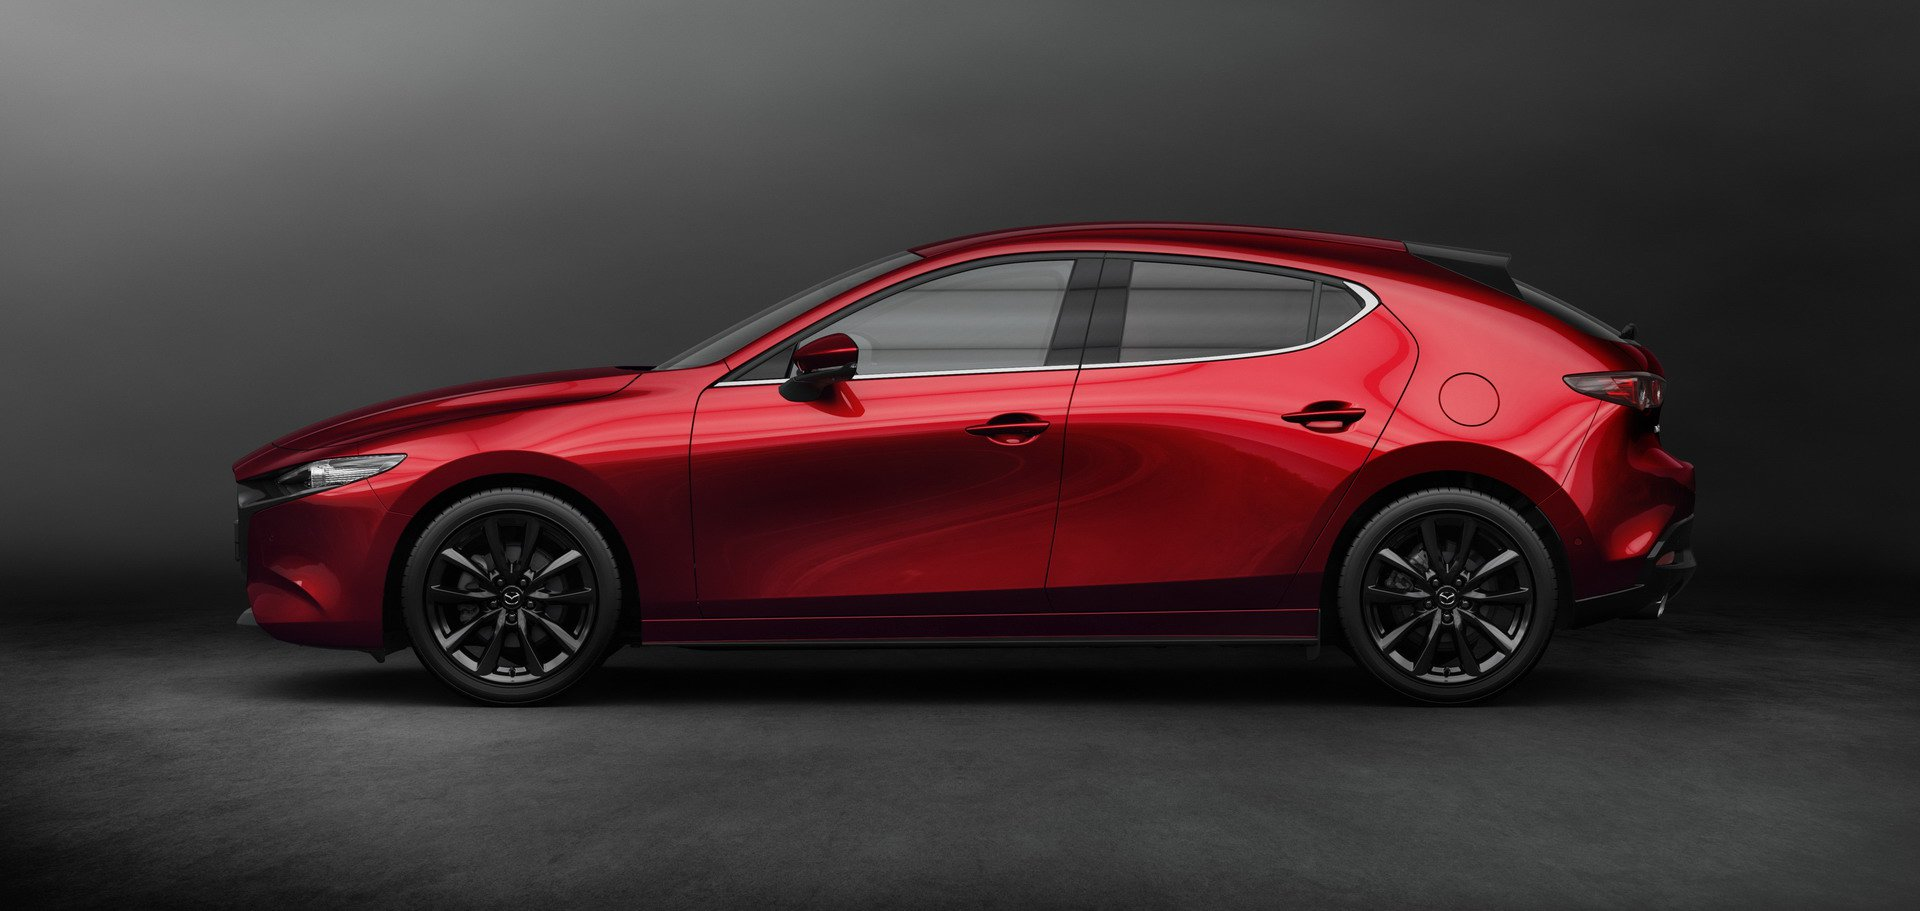 Mazda3 Hatchback and Mazda3 sedan 2019 (9)